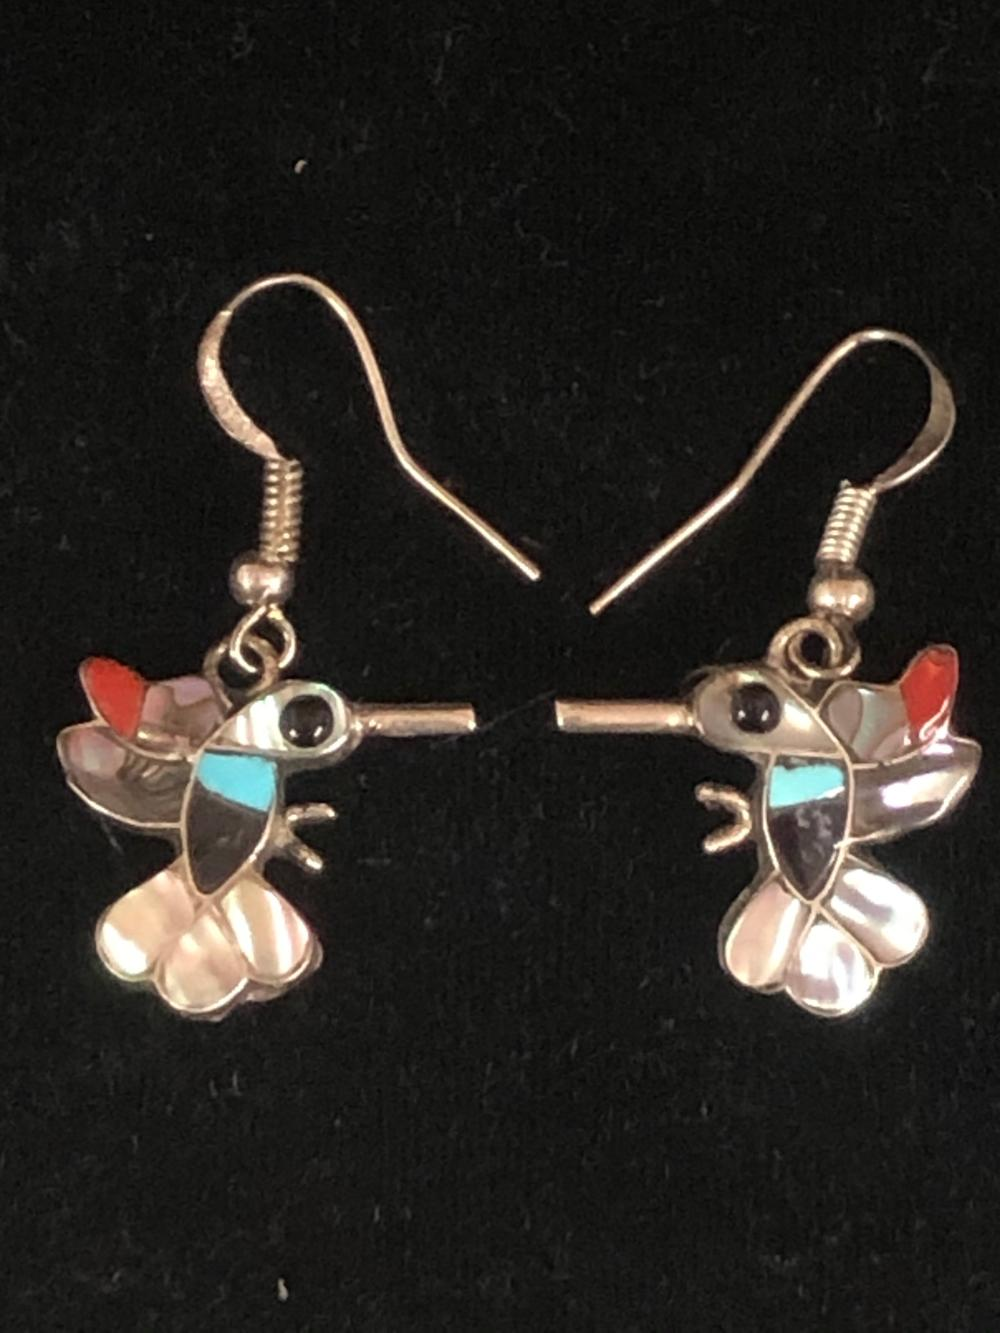 Hummingbird sterling silver earrings with multiple stones